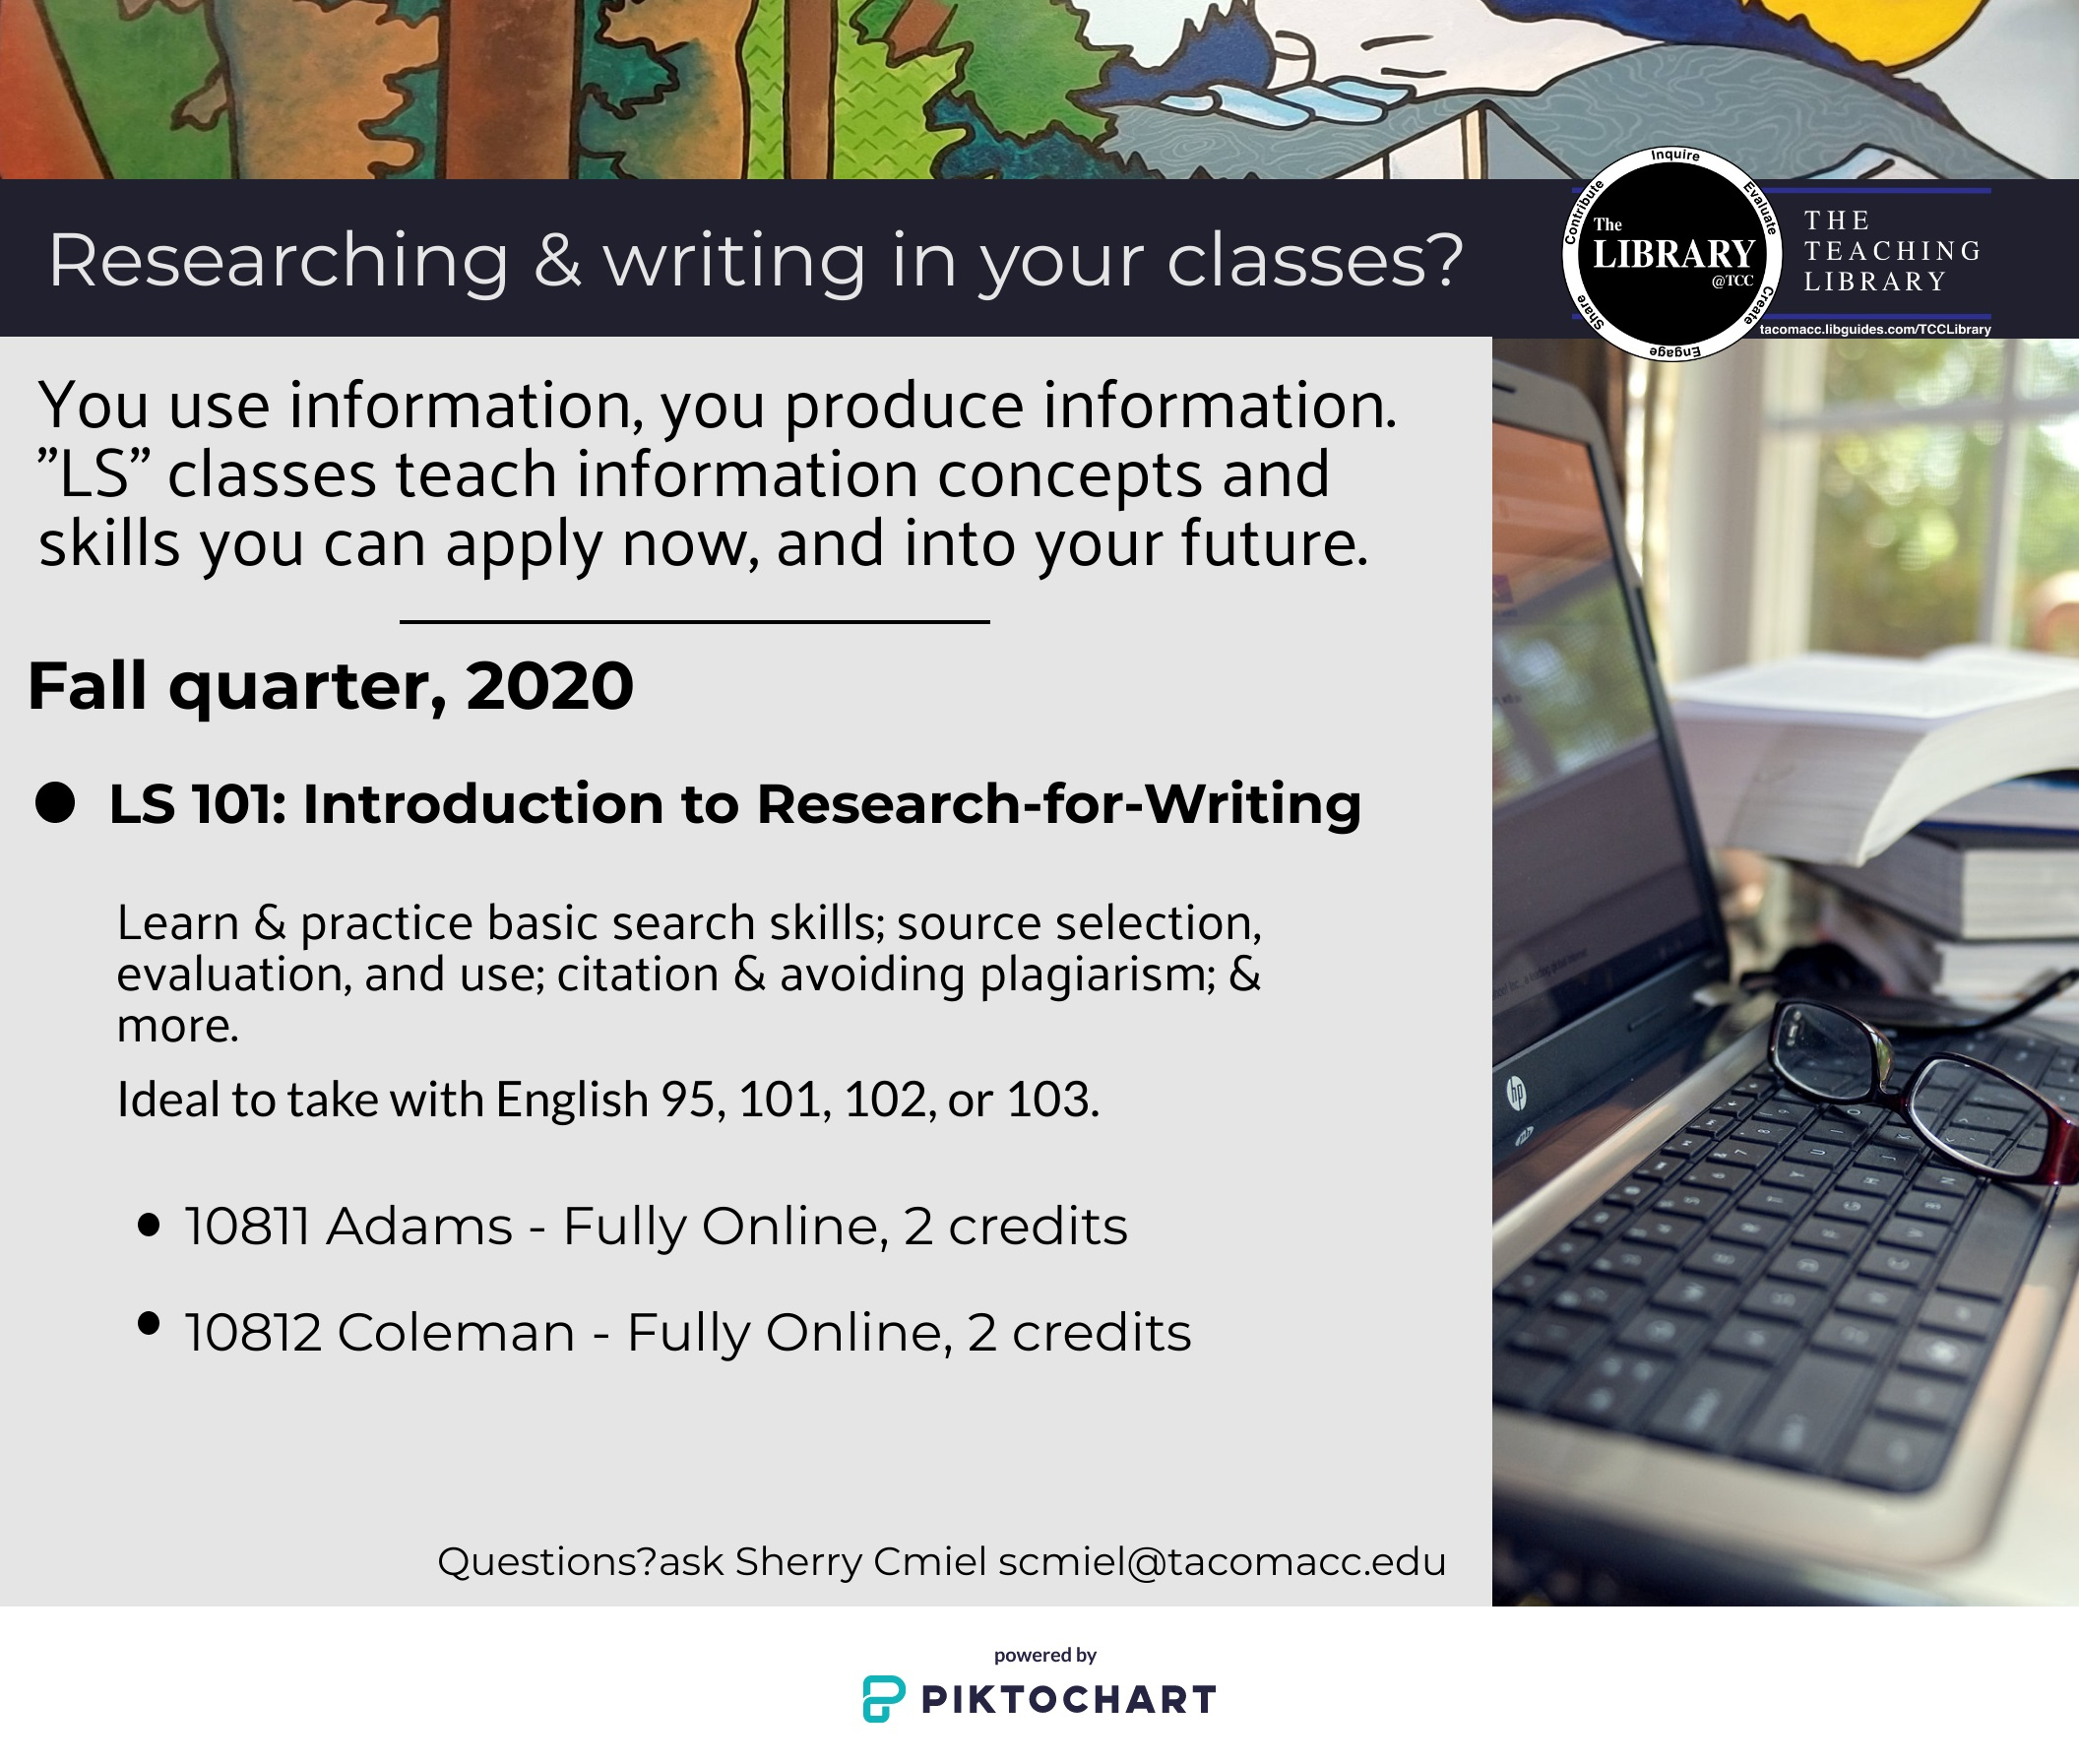 Fall 2020 credit course flier: LS 101. Researching and writing in your classes? LS 101 prepares you for your classes here and beyond with skills and concepts instruction and practice that includes basic and intermediate search skills, source selection, evaluation and use, citation and avoiding plagiarism, and more. Take LS 101 with English 95, 101, 102 or 103. Adams and Coleman teach two full online sections. Questions? Ask Sherry Cmiel at scmiel@tacomacc.edu